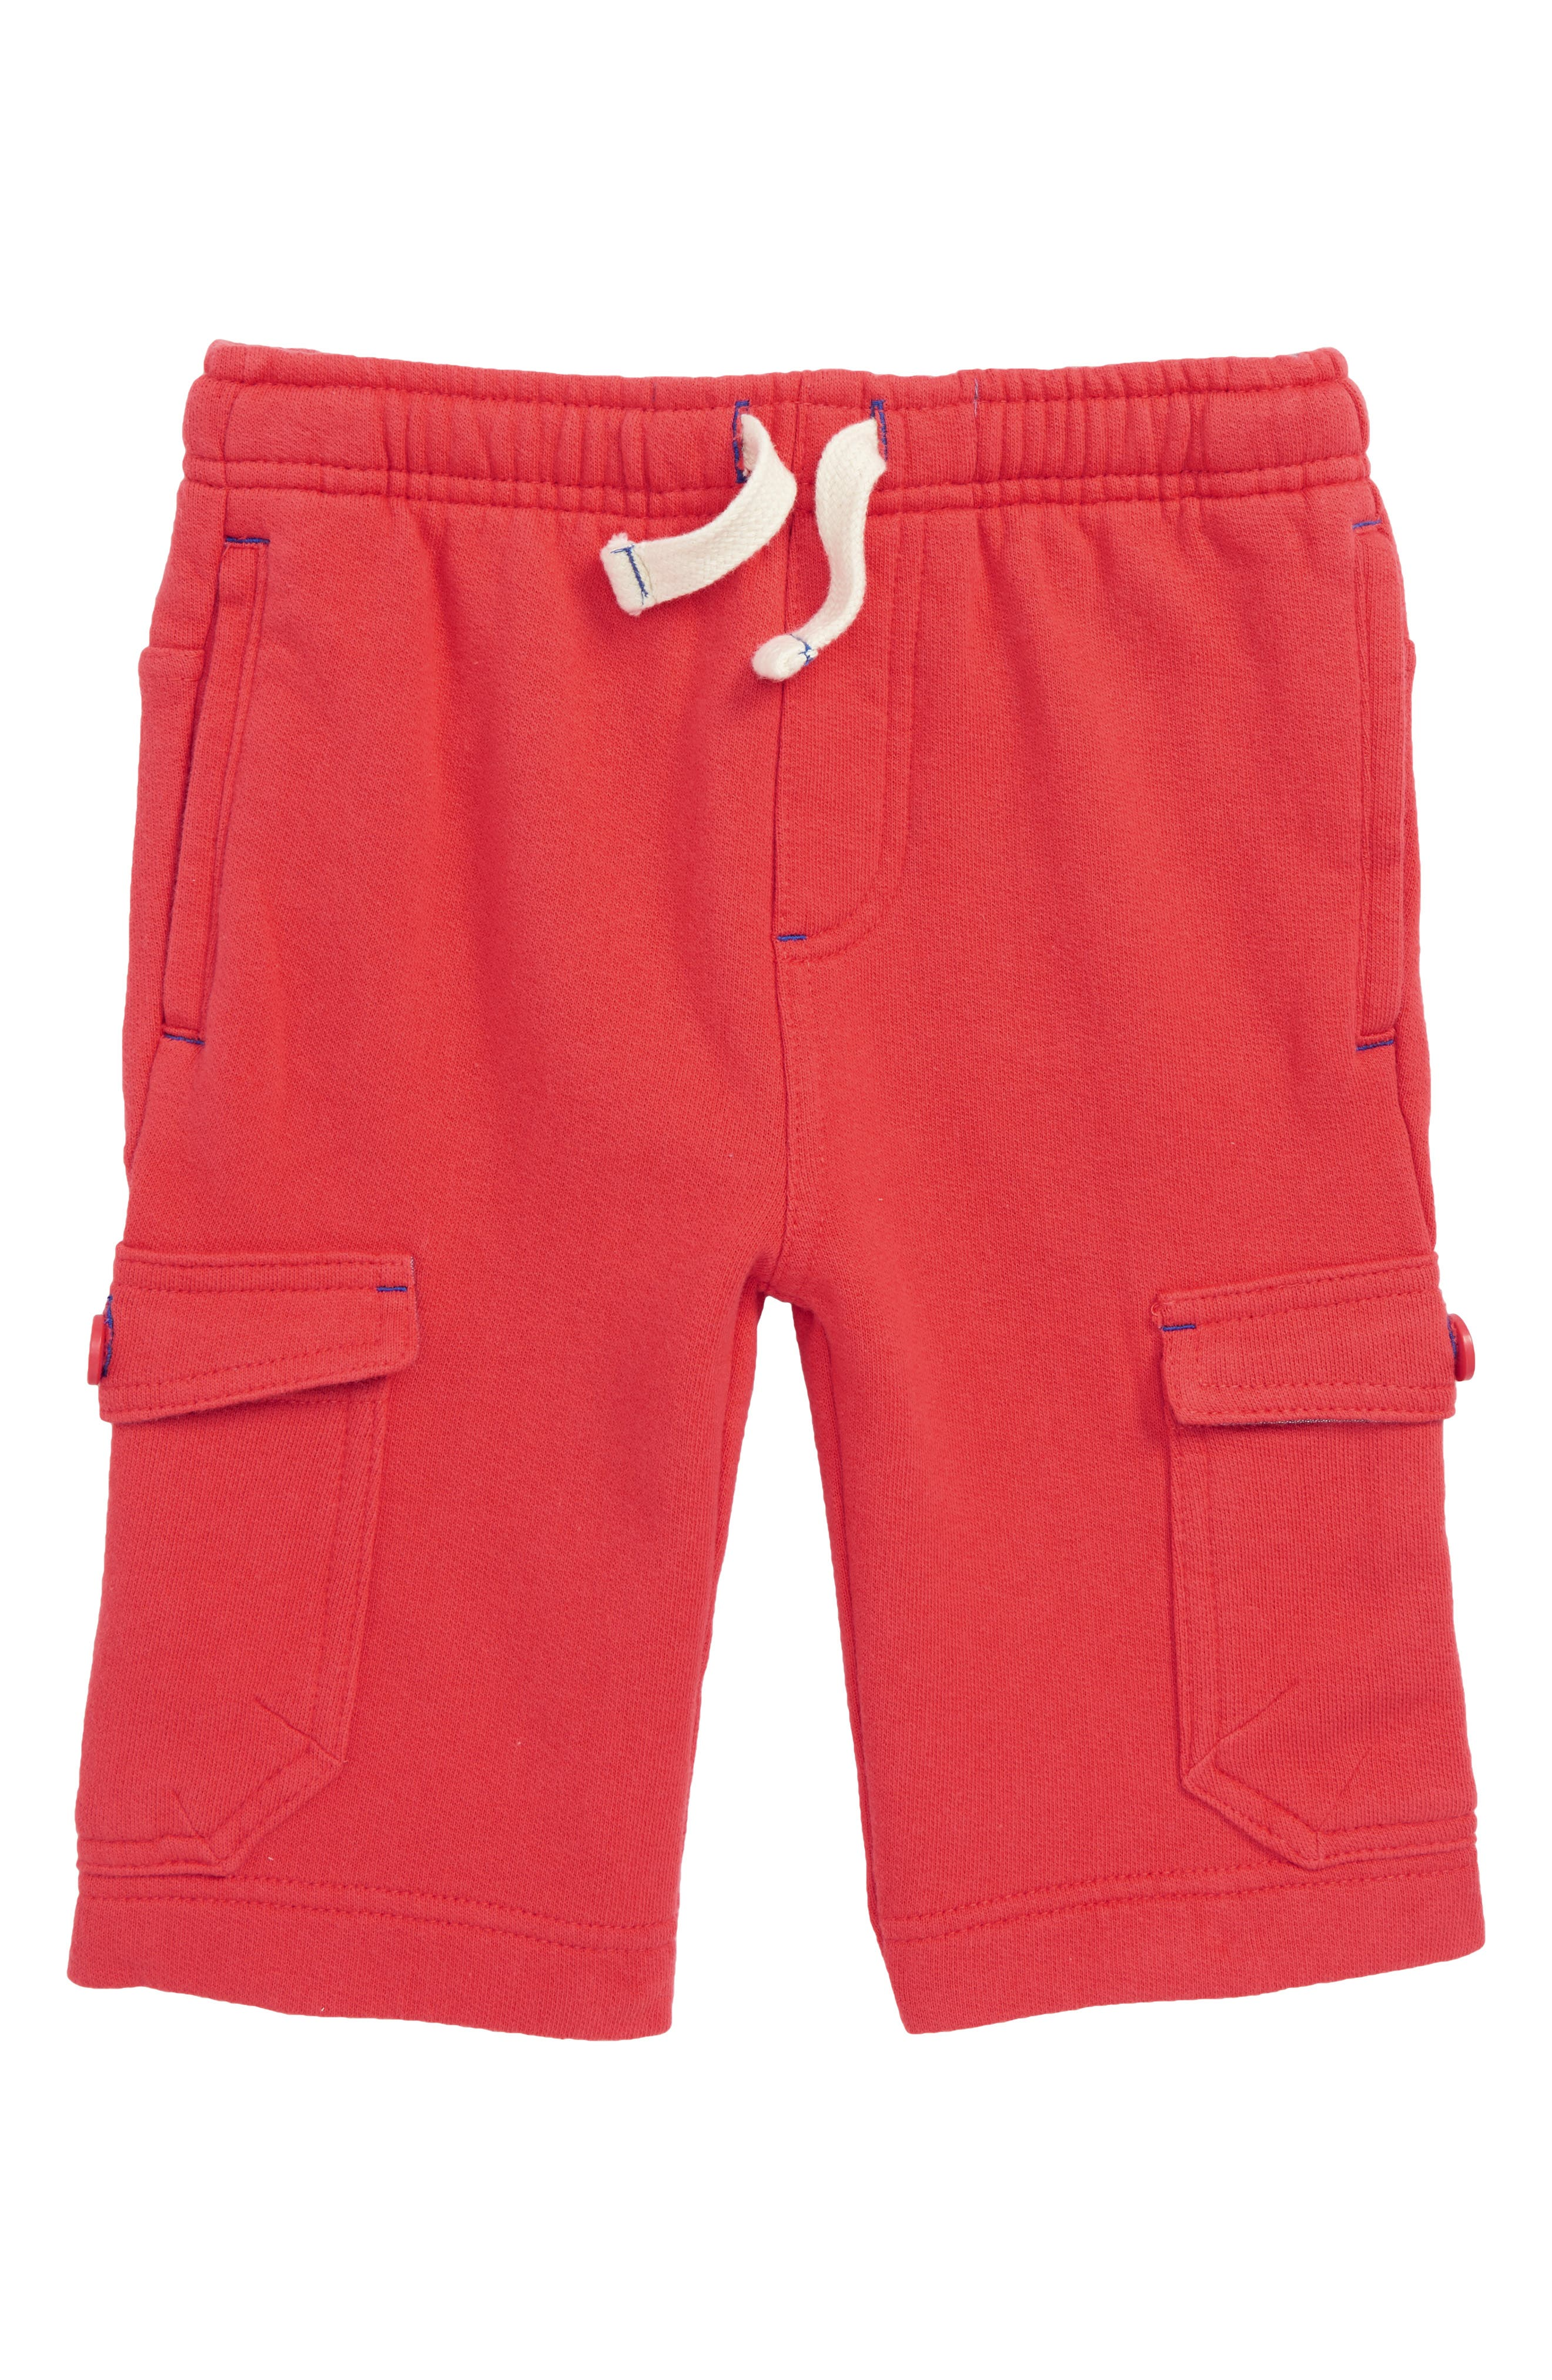 Jersey Cargo Shorts,                         Main,                         color, Jam Red